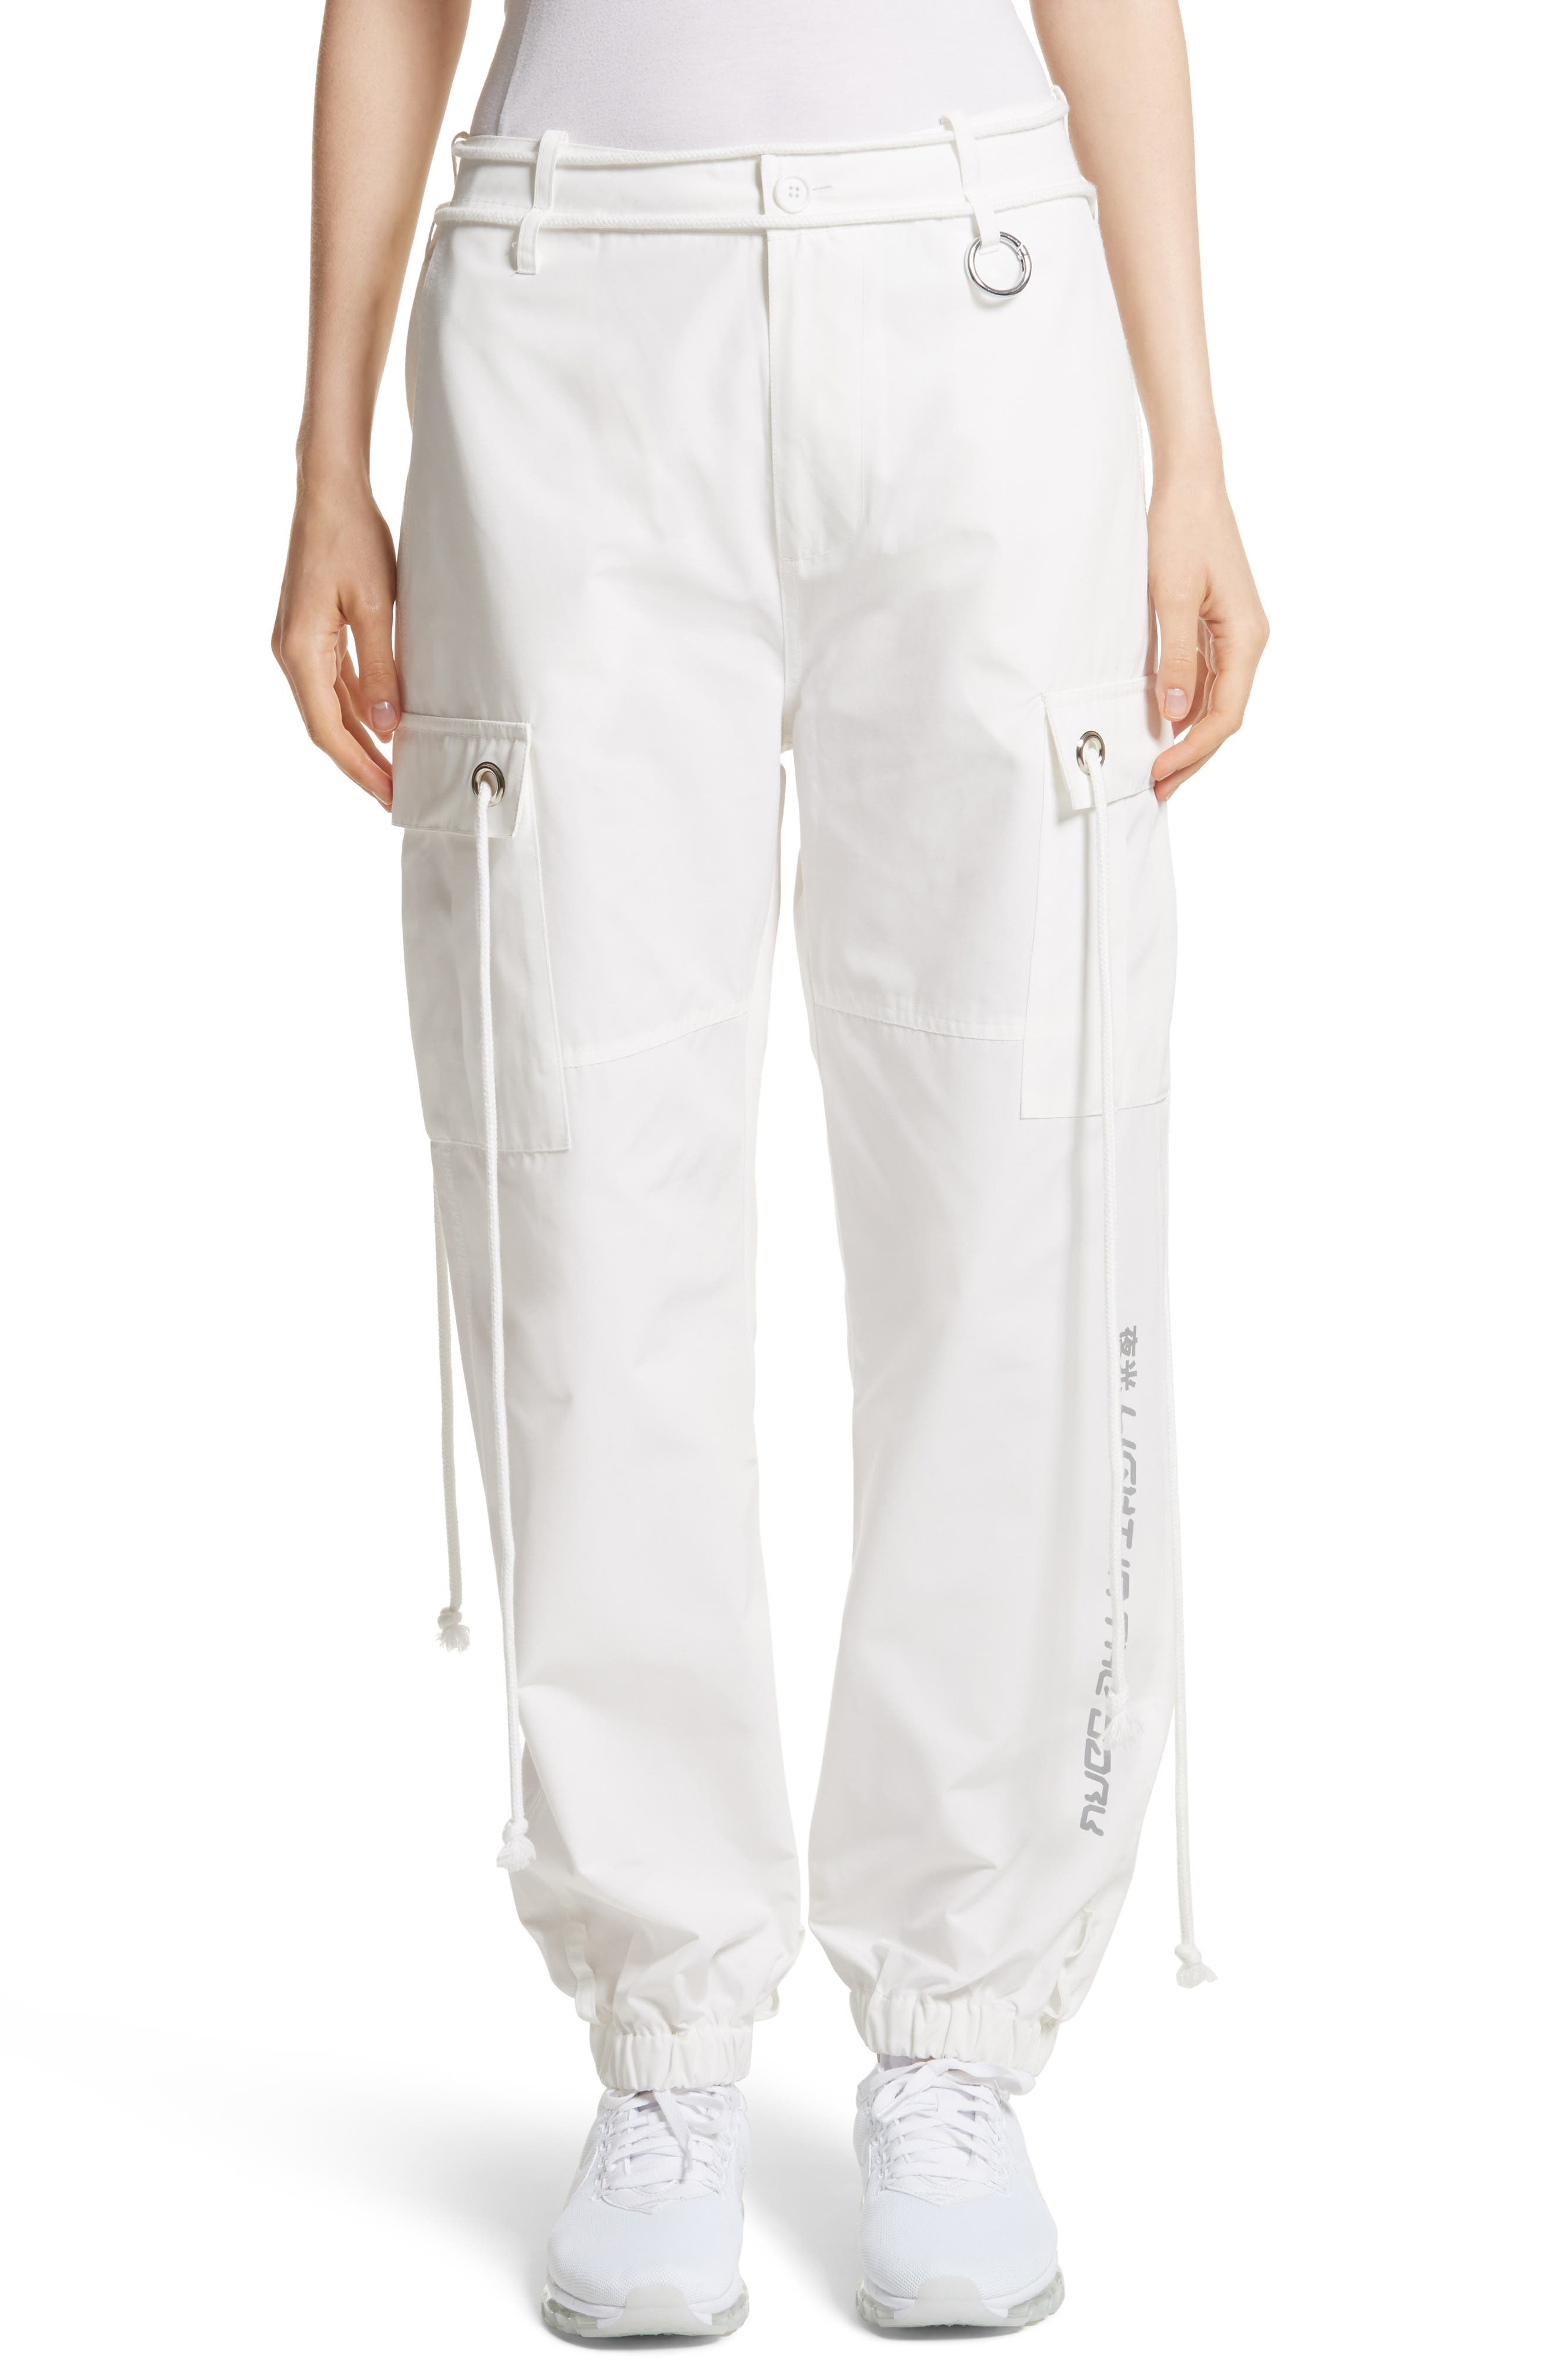 Light in the Dark Cargo Pants,                         Main,                         color, White